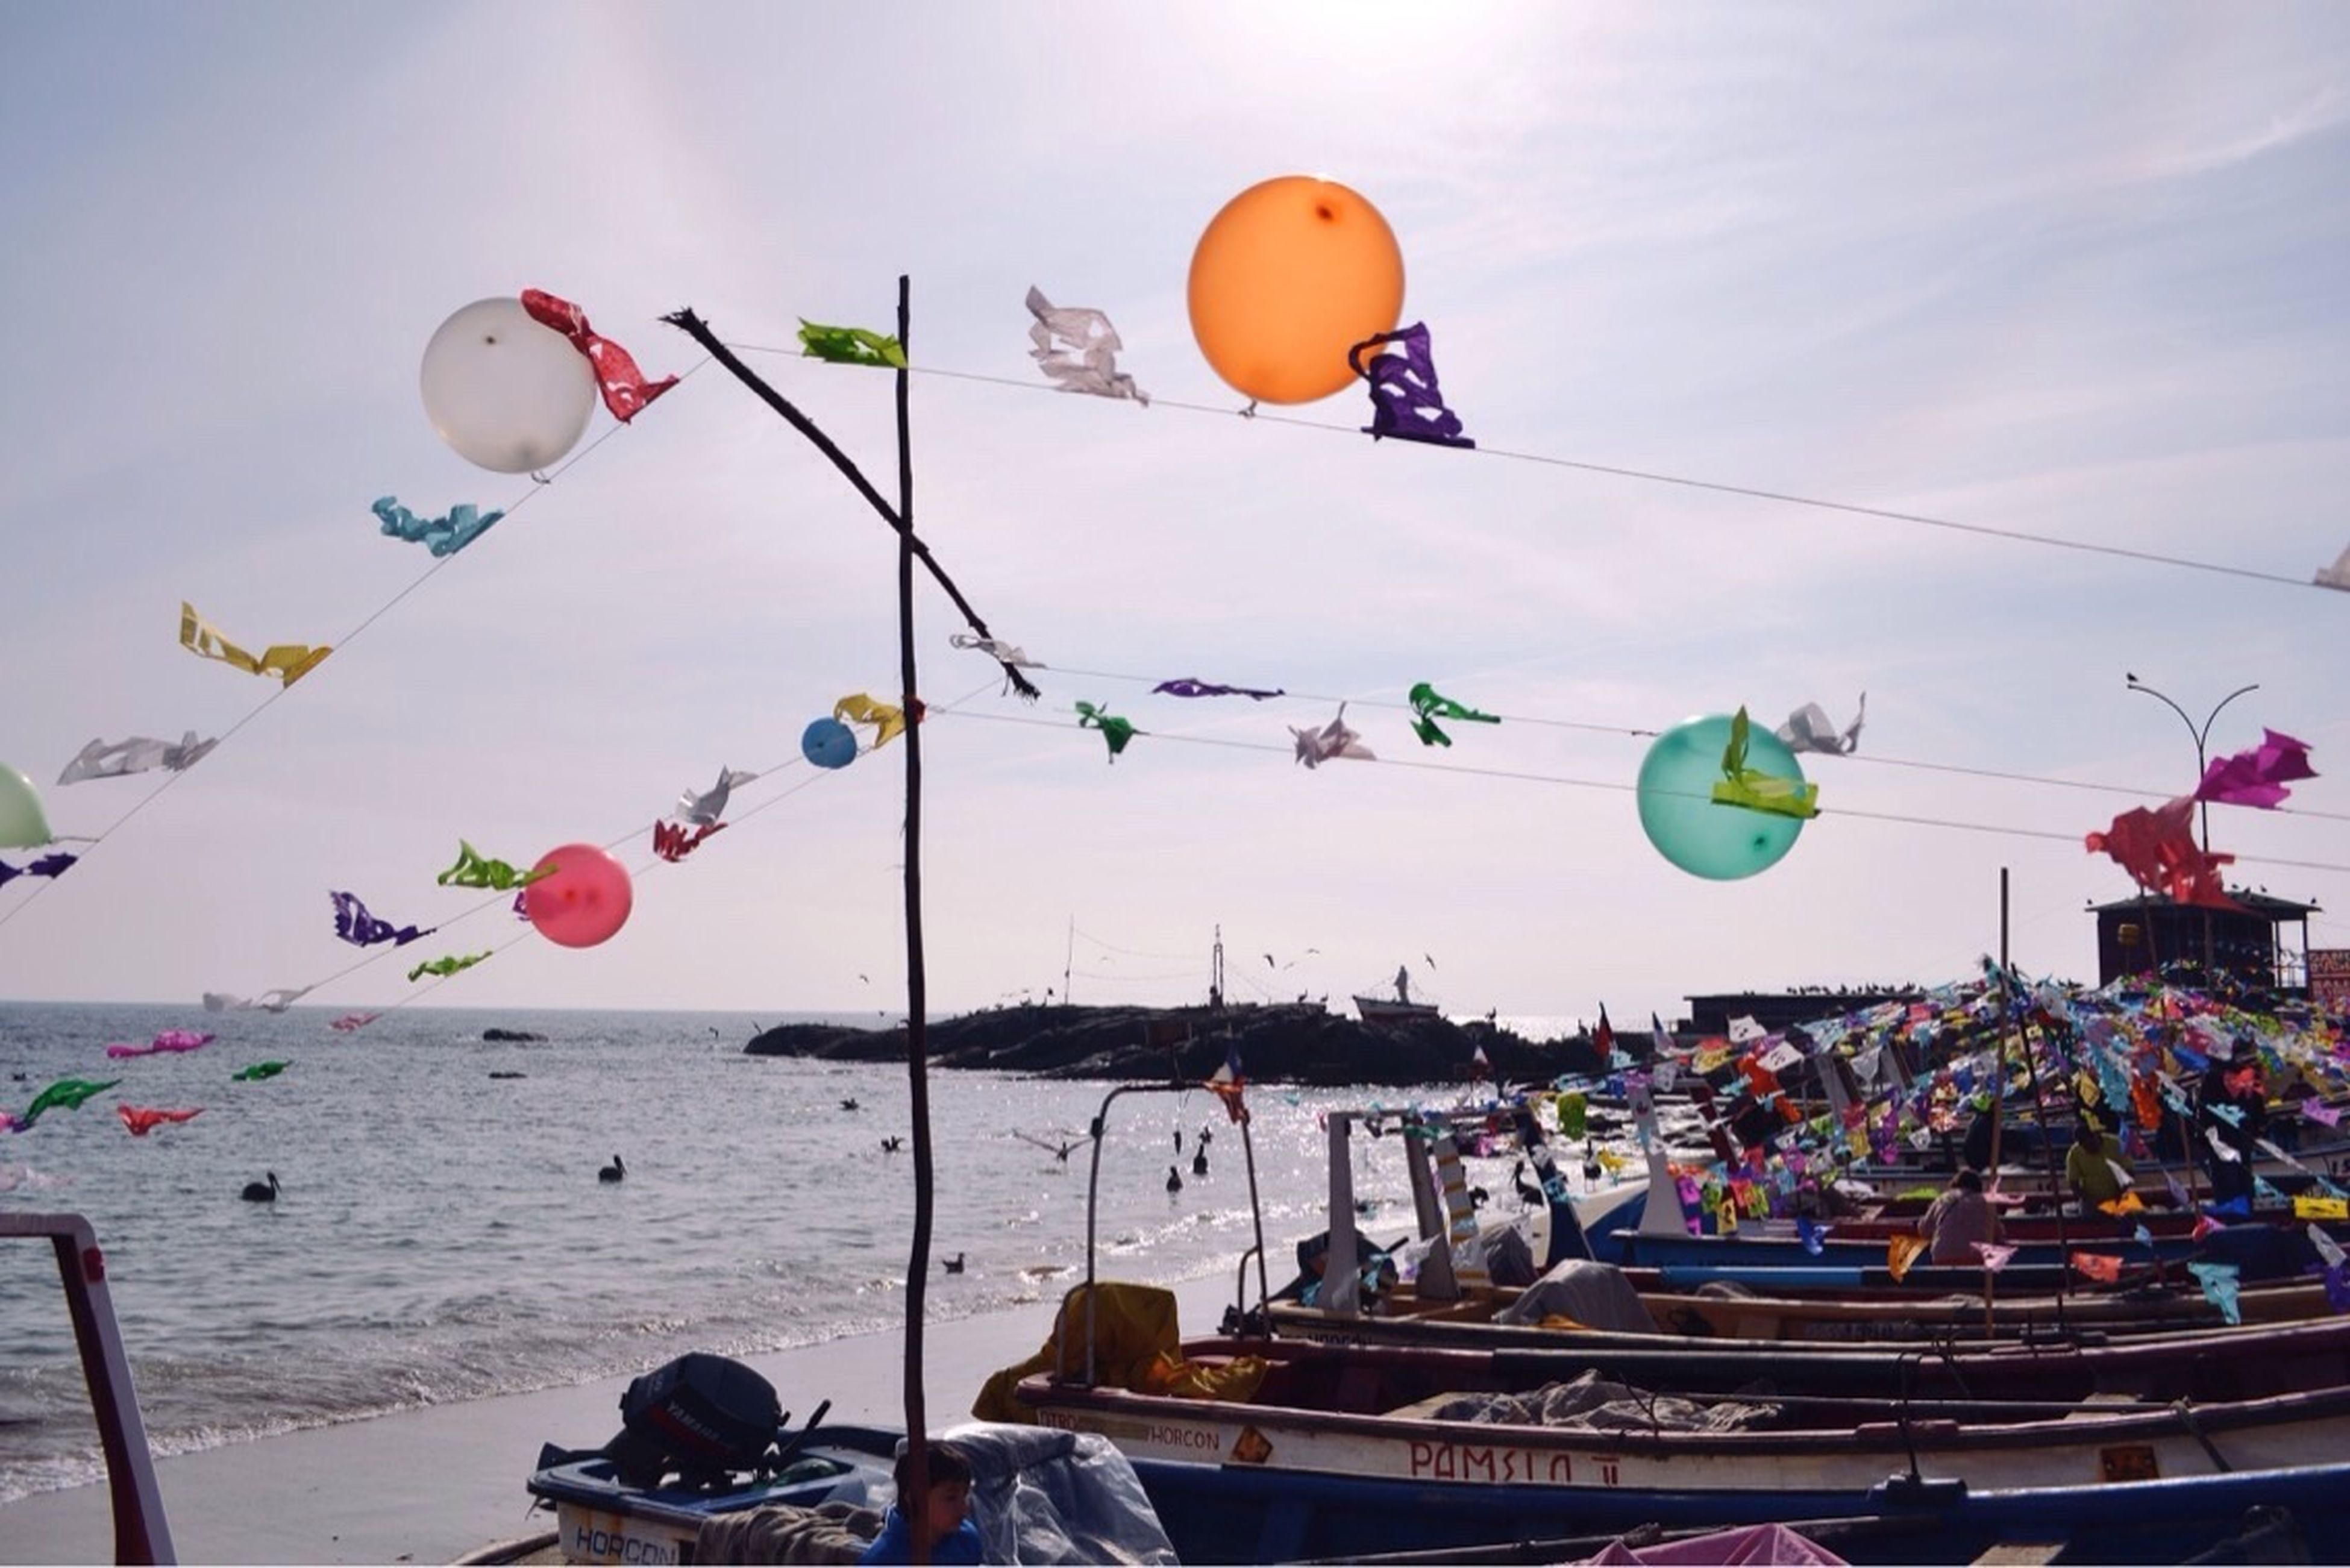 real people, outdoors, sky, balloon, multi colored, sea, day, celebration, men, large group of people, nature, people